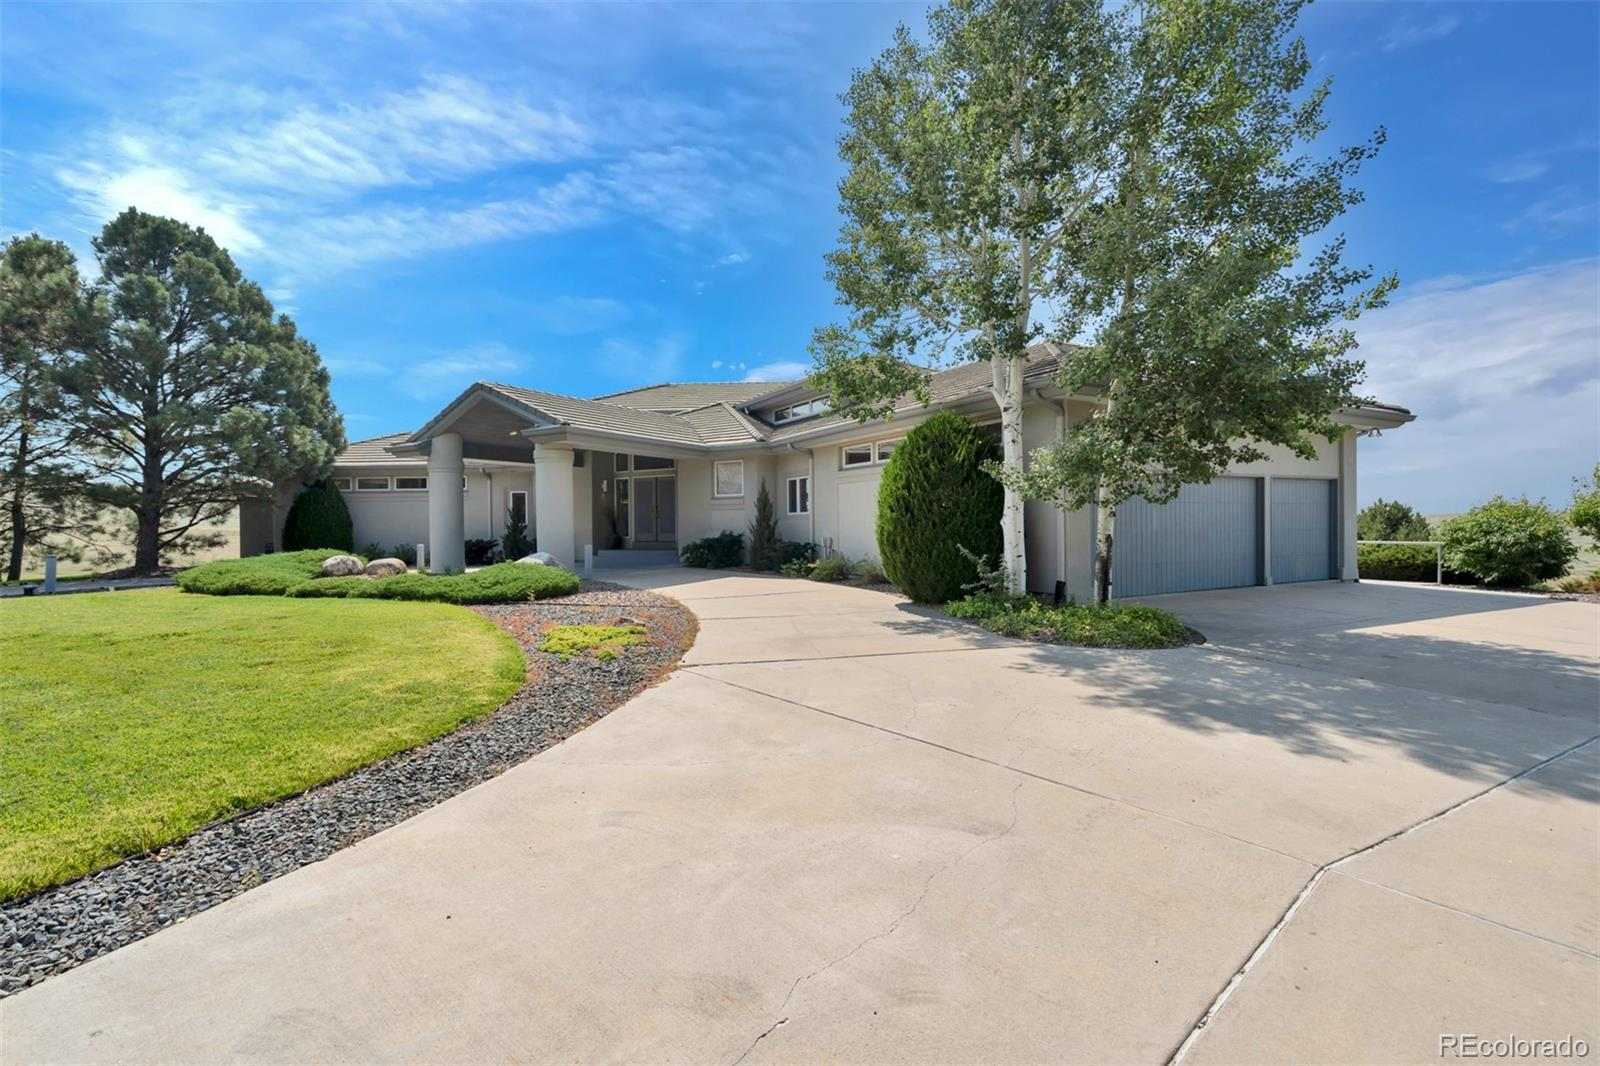 7891 S Argonne Street Property Photo - Centennial, CO real estate listing